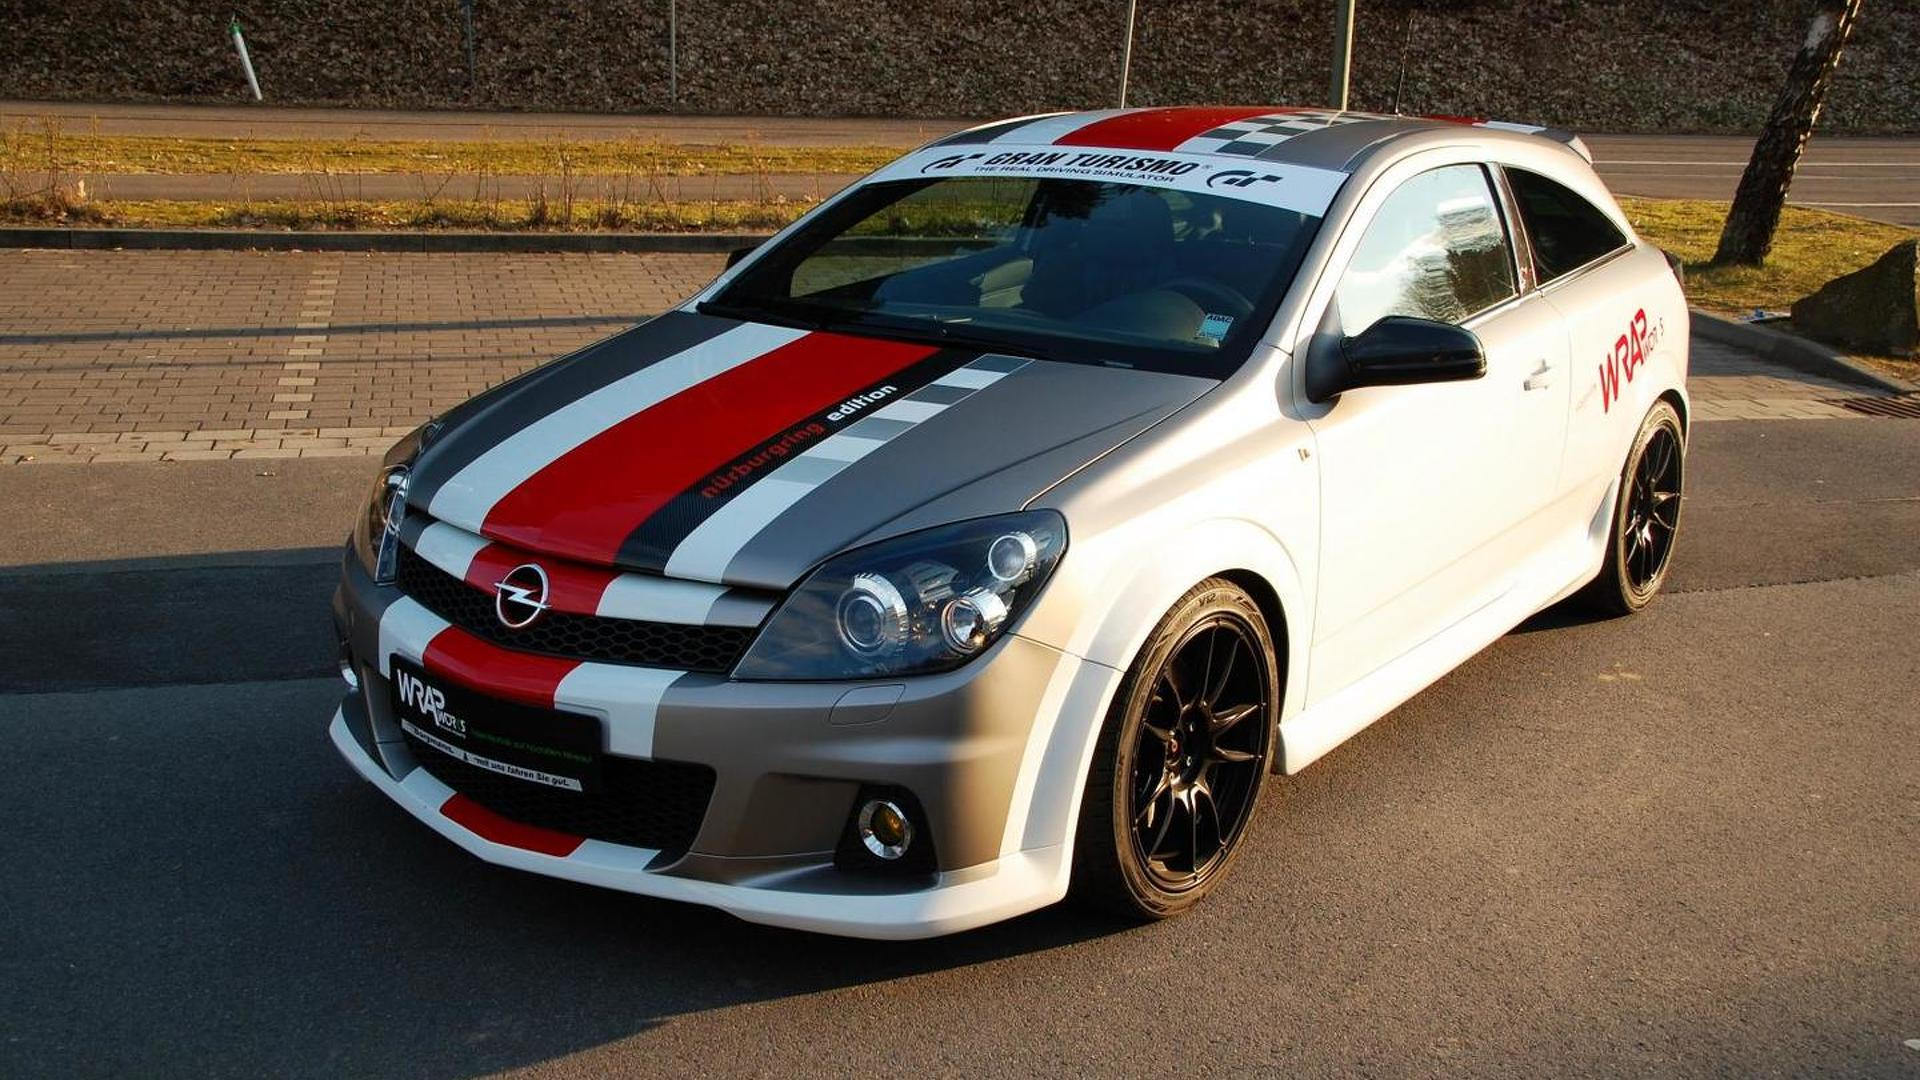 opel astra h opc nurburgring edition modified by wrap works. Black Bedroom Furniture Sets. Home Design Ideas